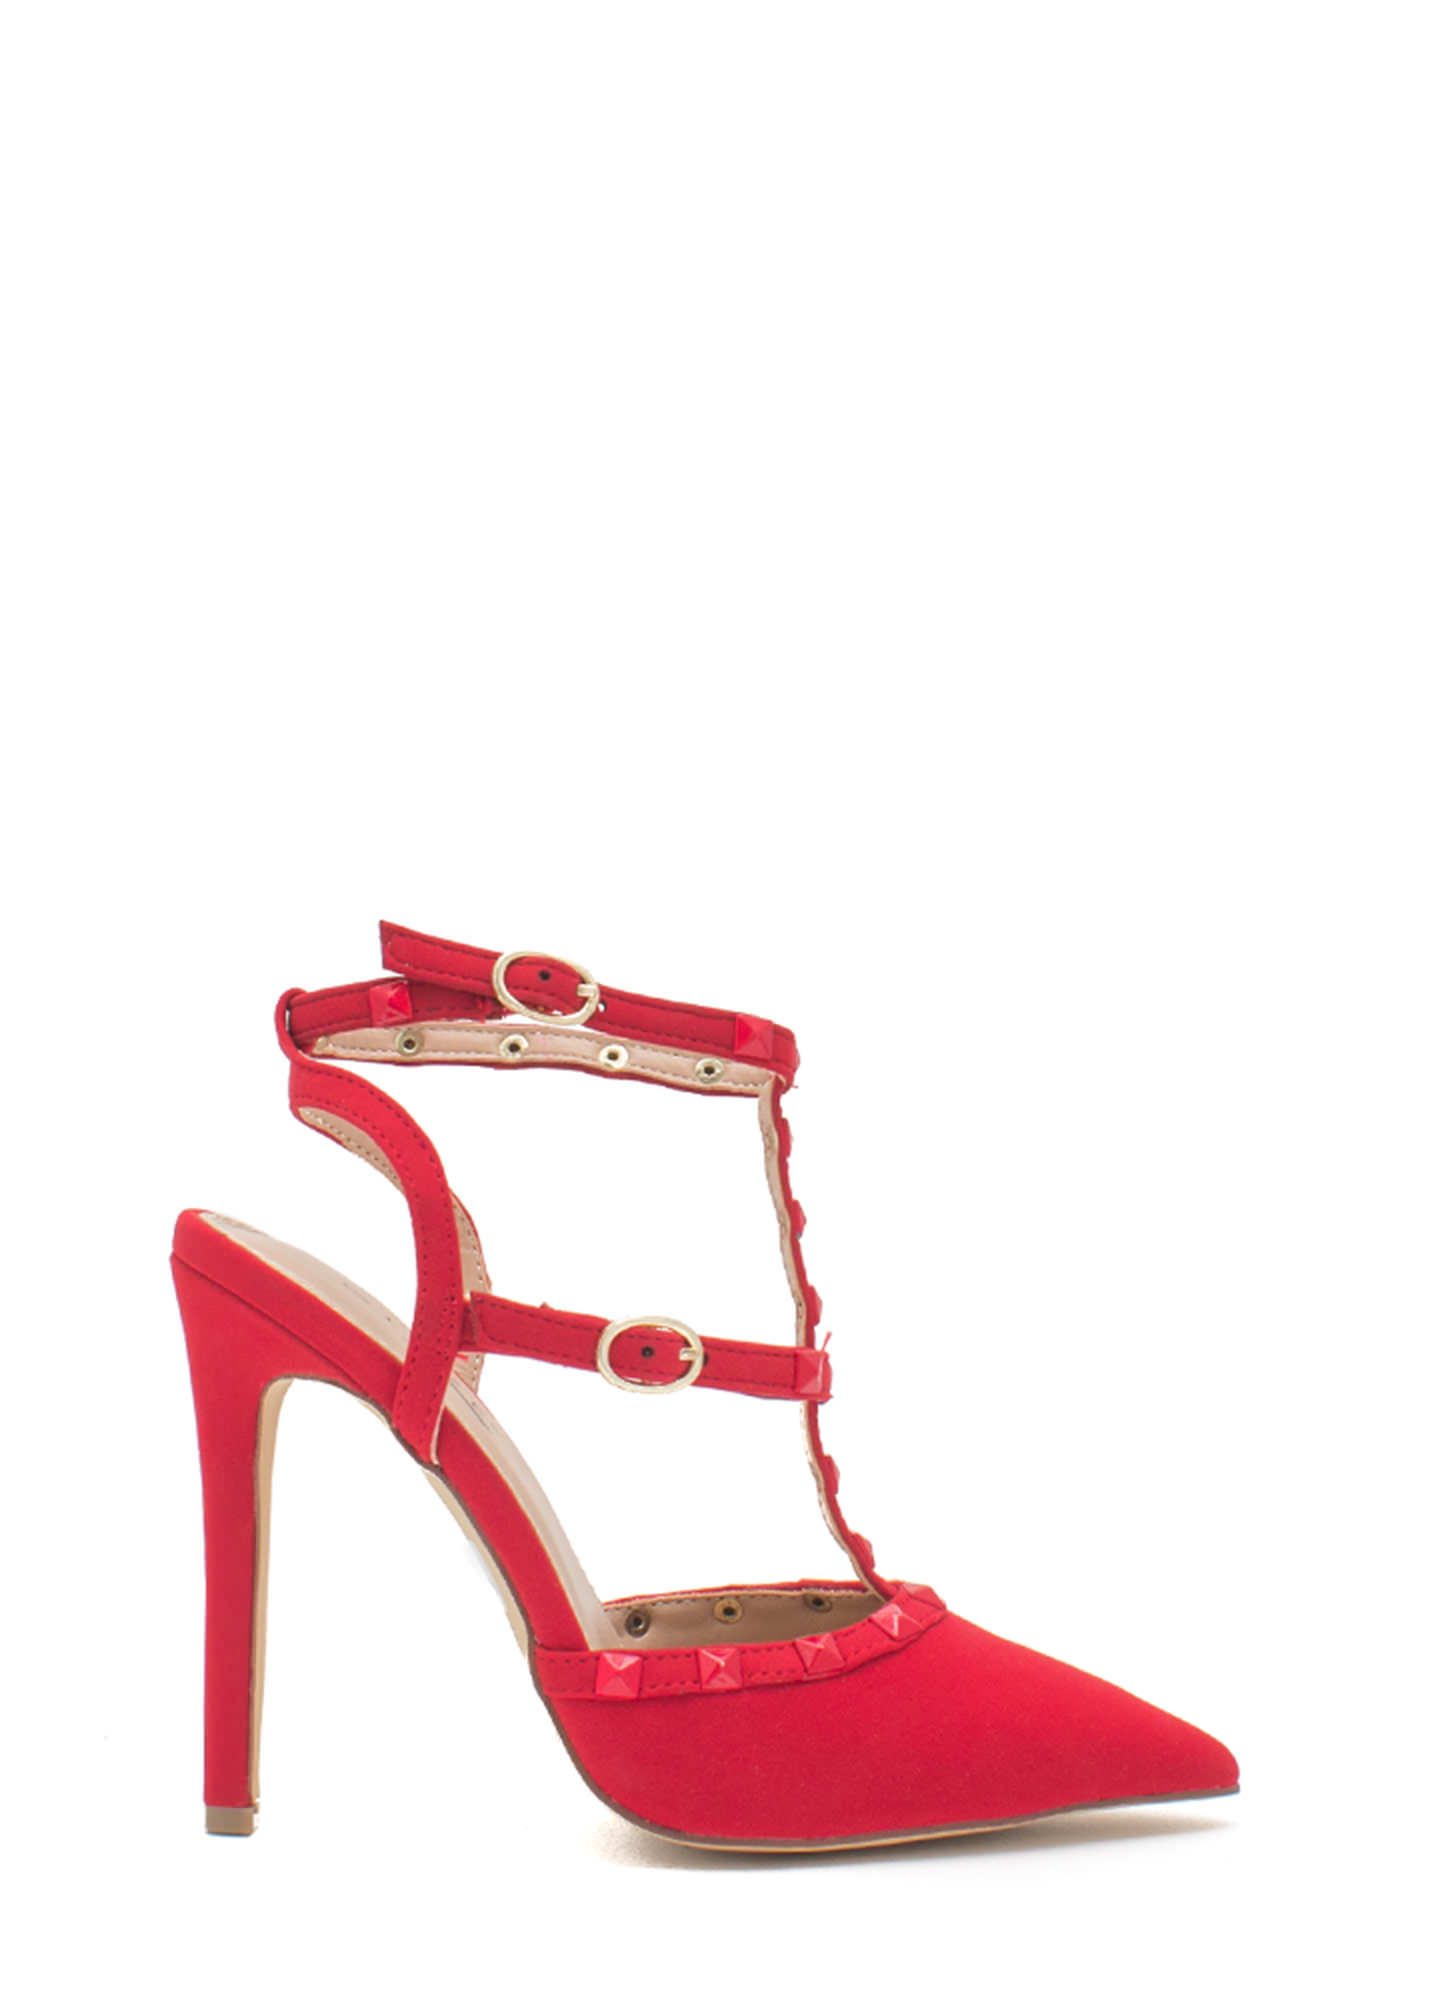 Ur A Stud Double T-Strap Heels RED